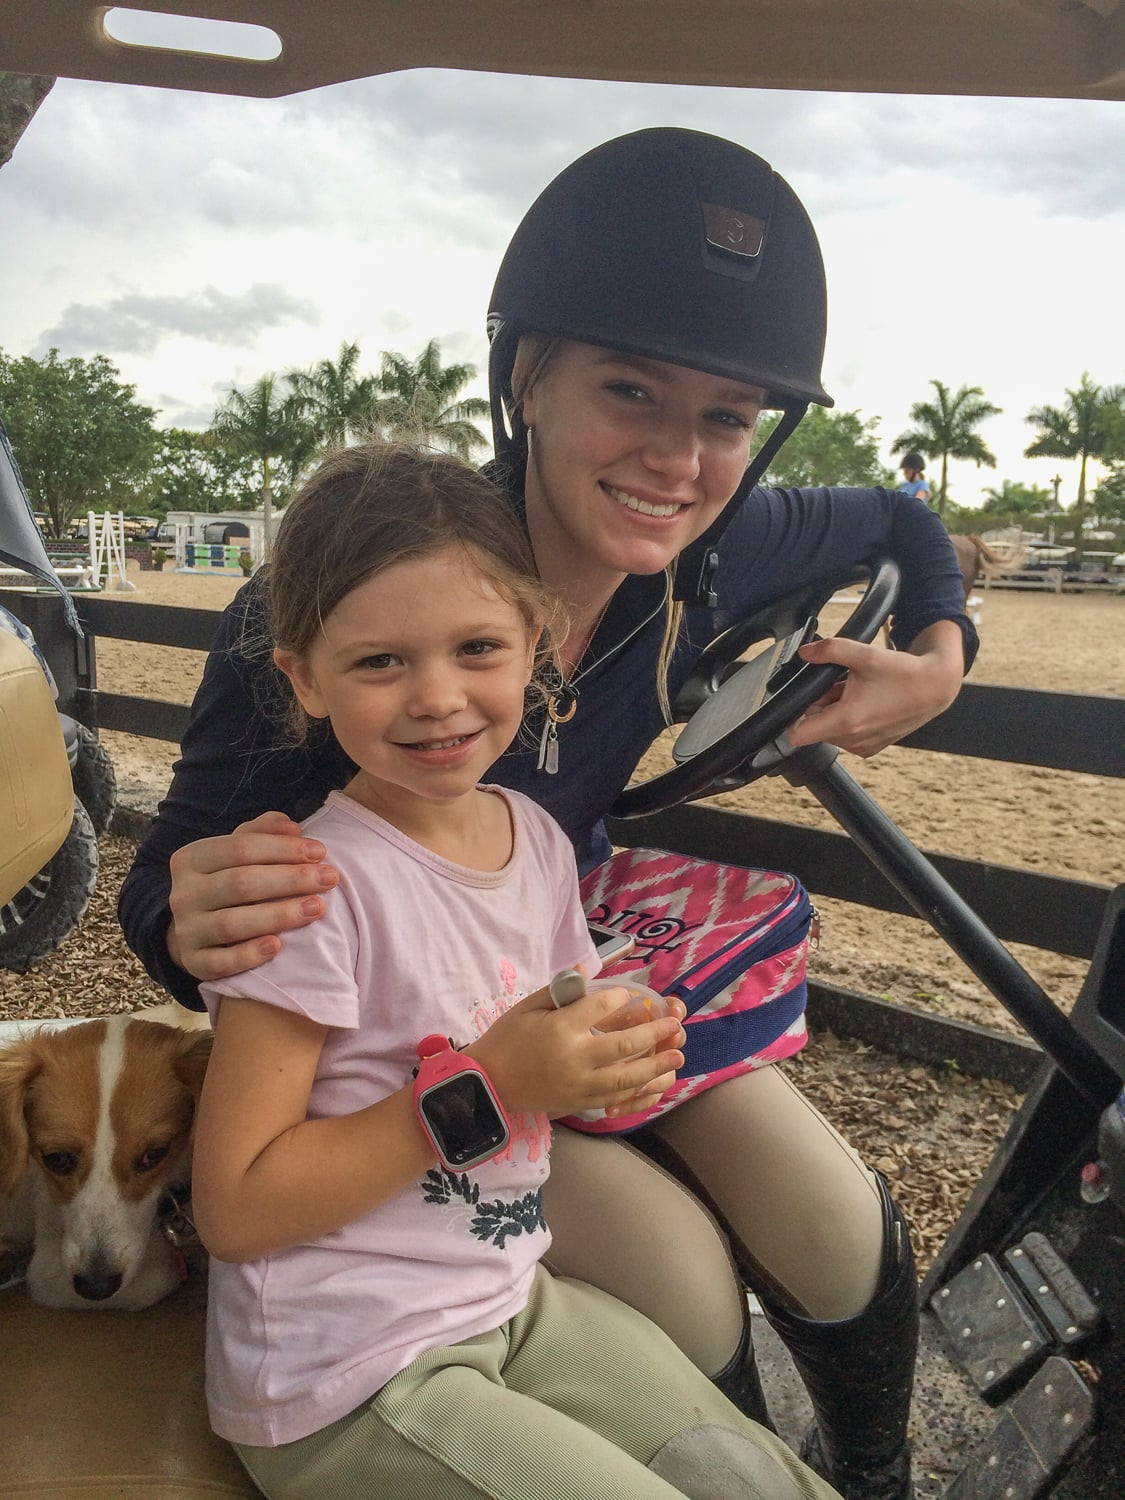 Elle Boyd and Stella Styslinger relaxing in Florida